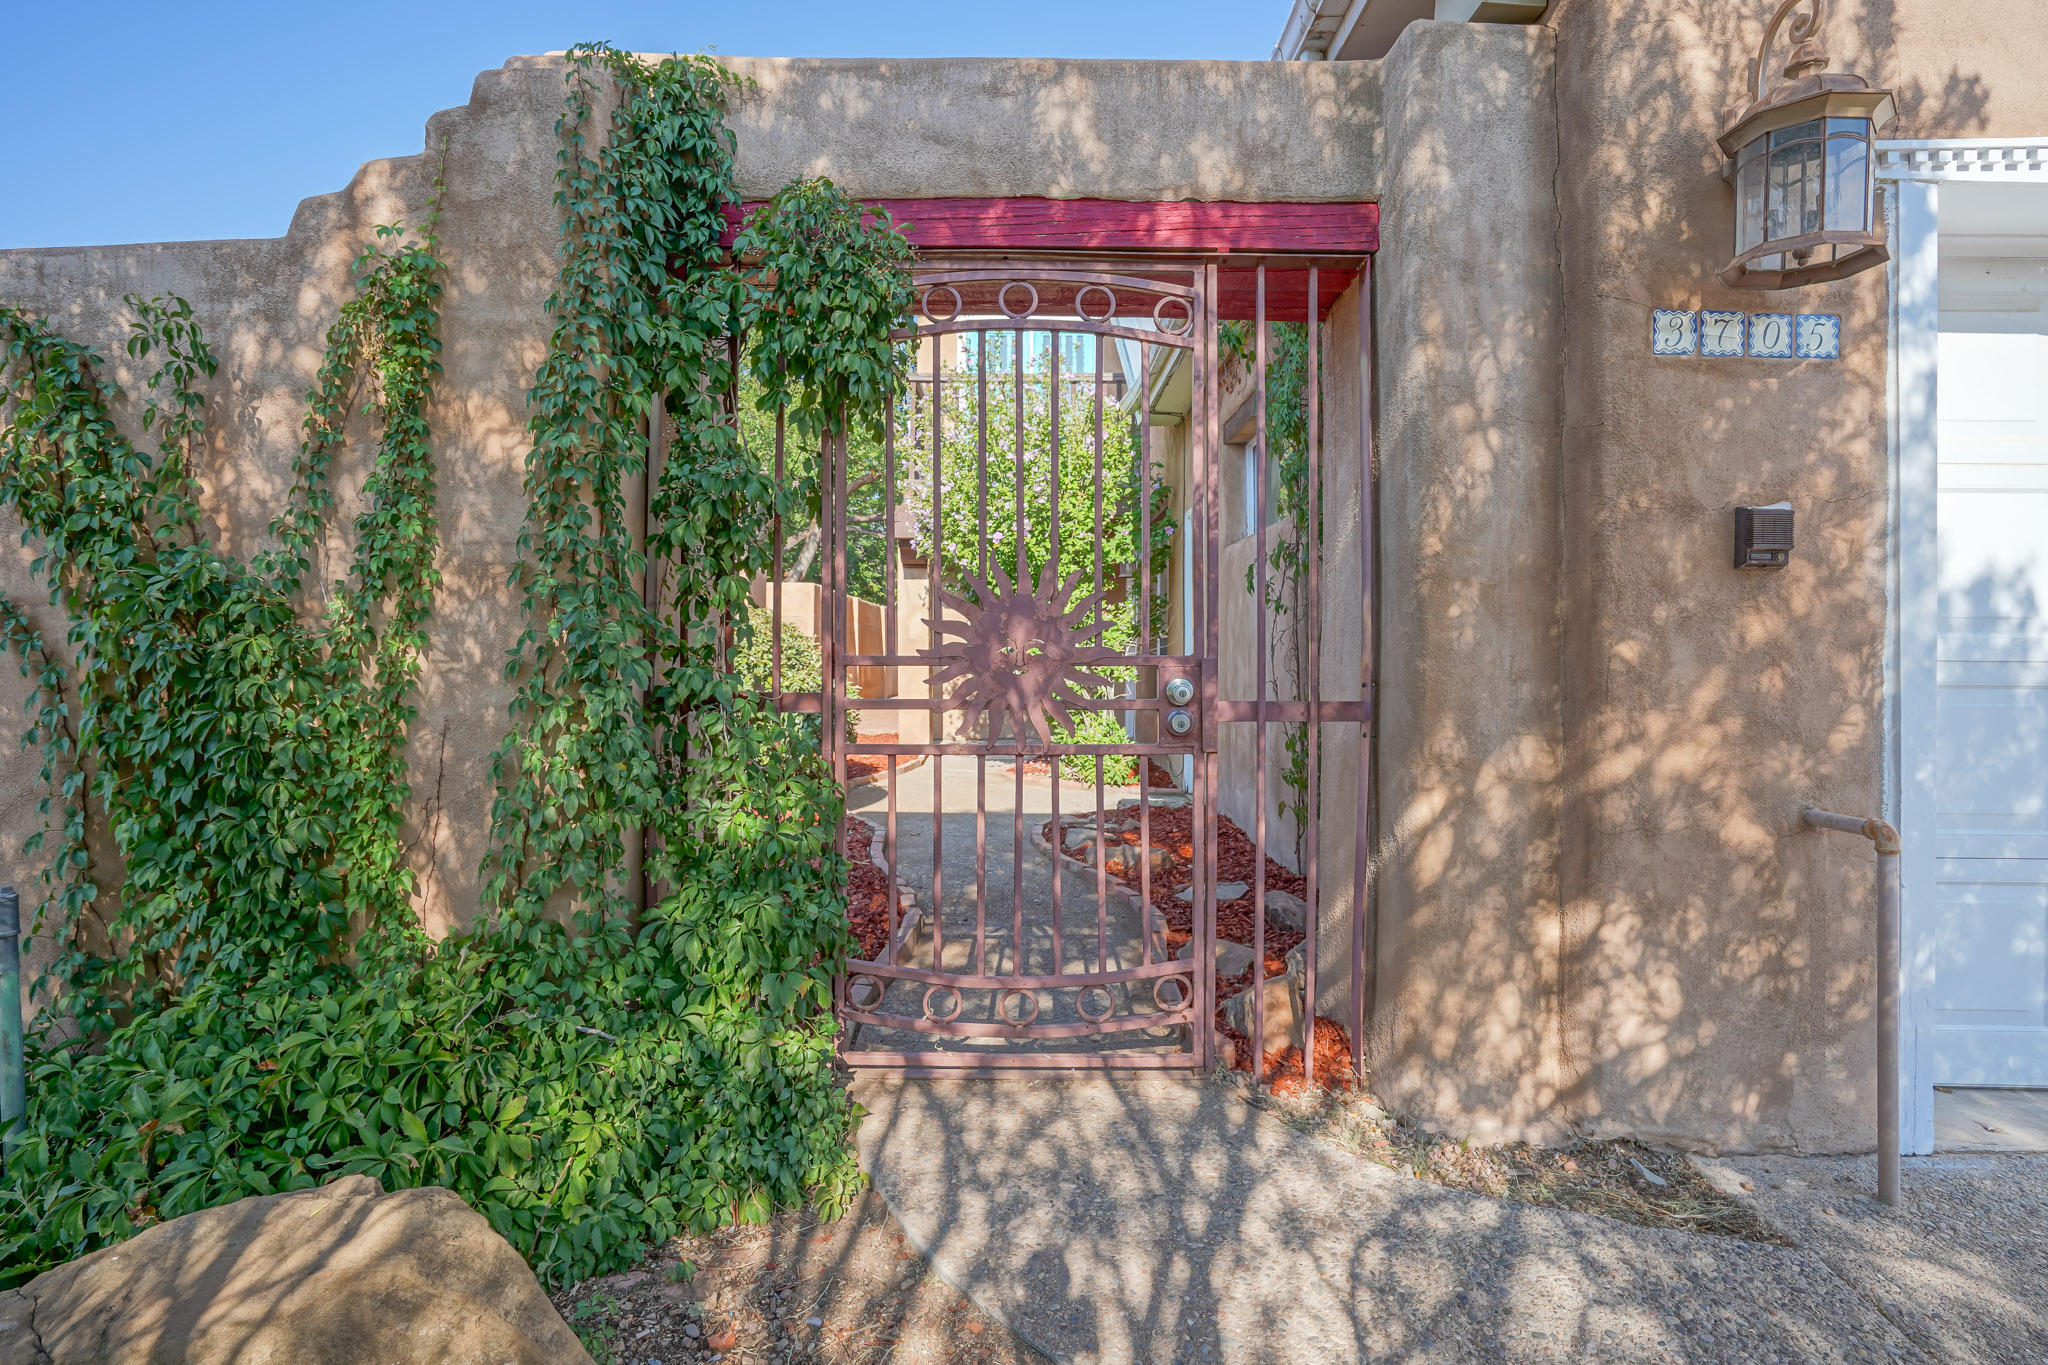 Come see this beautiful Northern New Mexico style home with lovely curb appeal in NW Albuquerque. This home features an inviting courtyard entry.  There are two bedrooms on the main floor, with the master on the upper floor.  The bathrooms are complete with Mexican tiles.  The kitchen looks onto an inviting living room with cathedral ceilings, saltillo tiles, and a wood burning kiva fireplace, and leads into the backyard courtyard that is great for BBQ's or just relaxing on a cool NM evening.  Conveniently located near parks, restaurants, shopping, & the freeway.